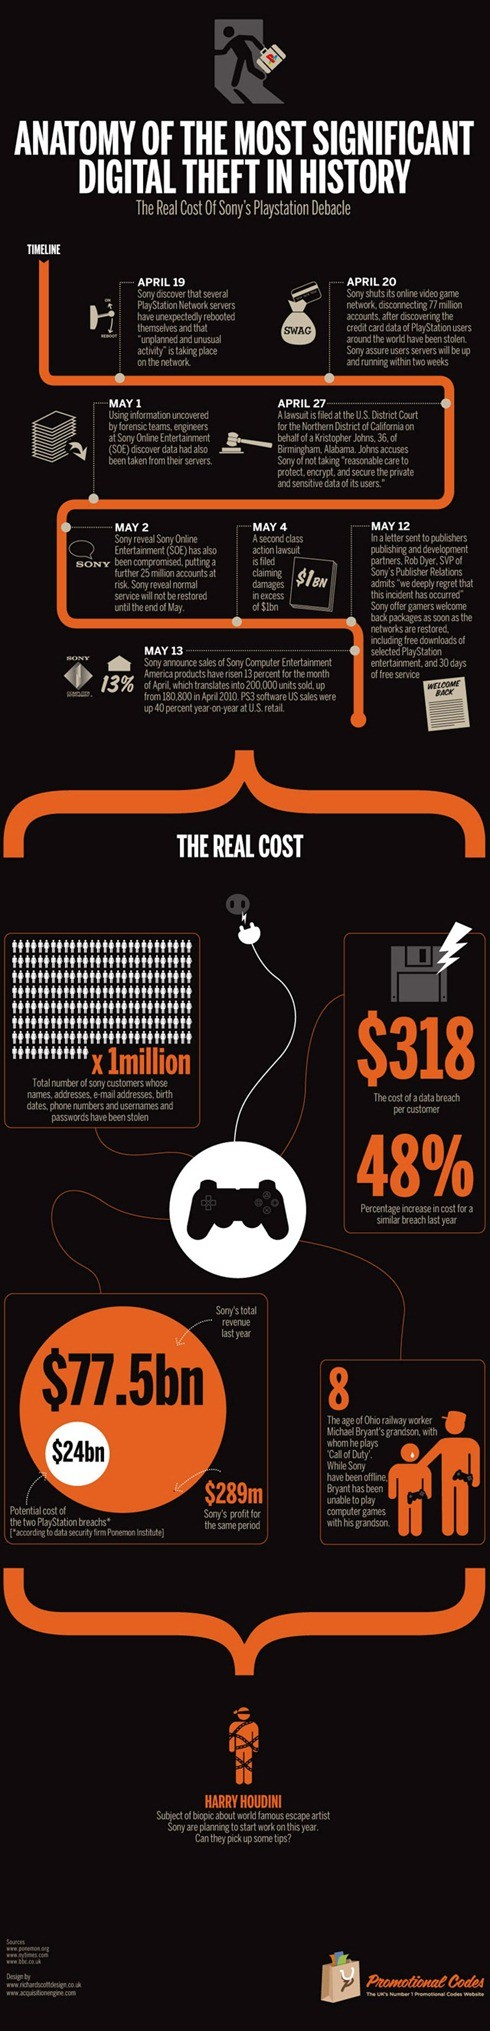 sony-pns-network-cost